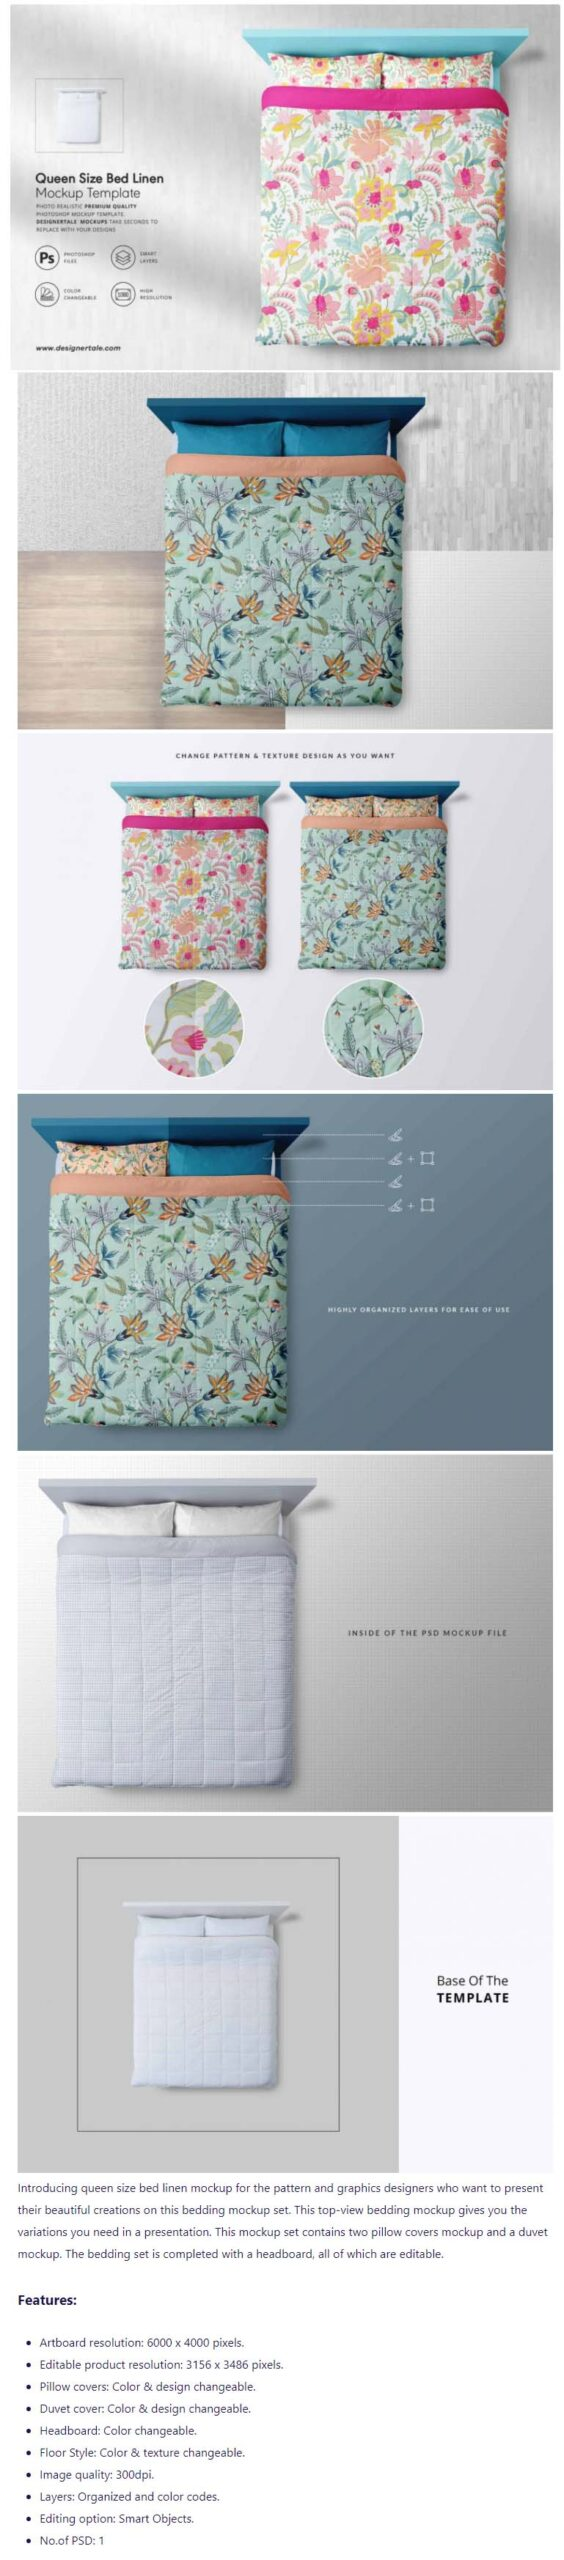 Free Download Queen Size Bed Linen Mockup PSD Template